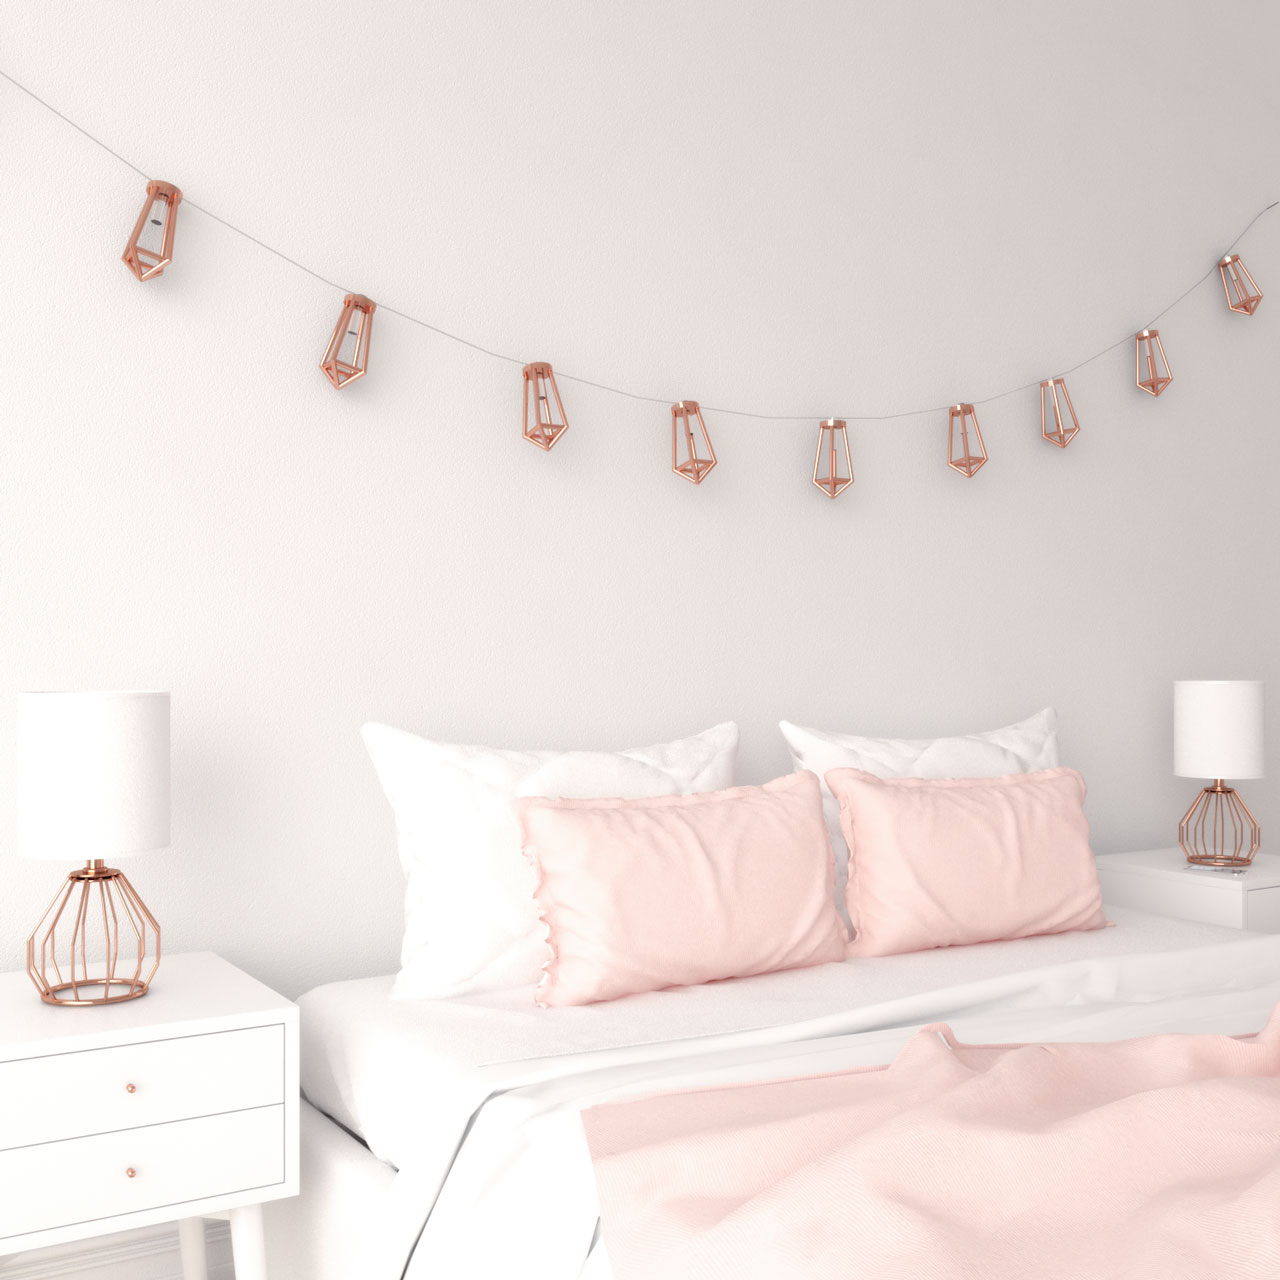 Rose gold string light decor ideas for bedroom